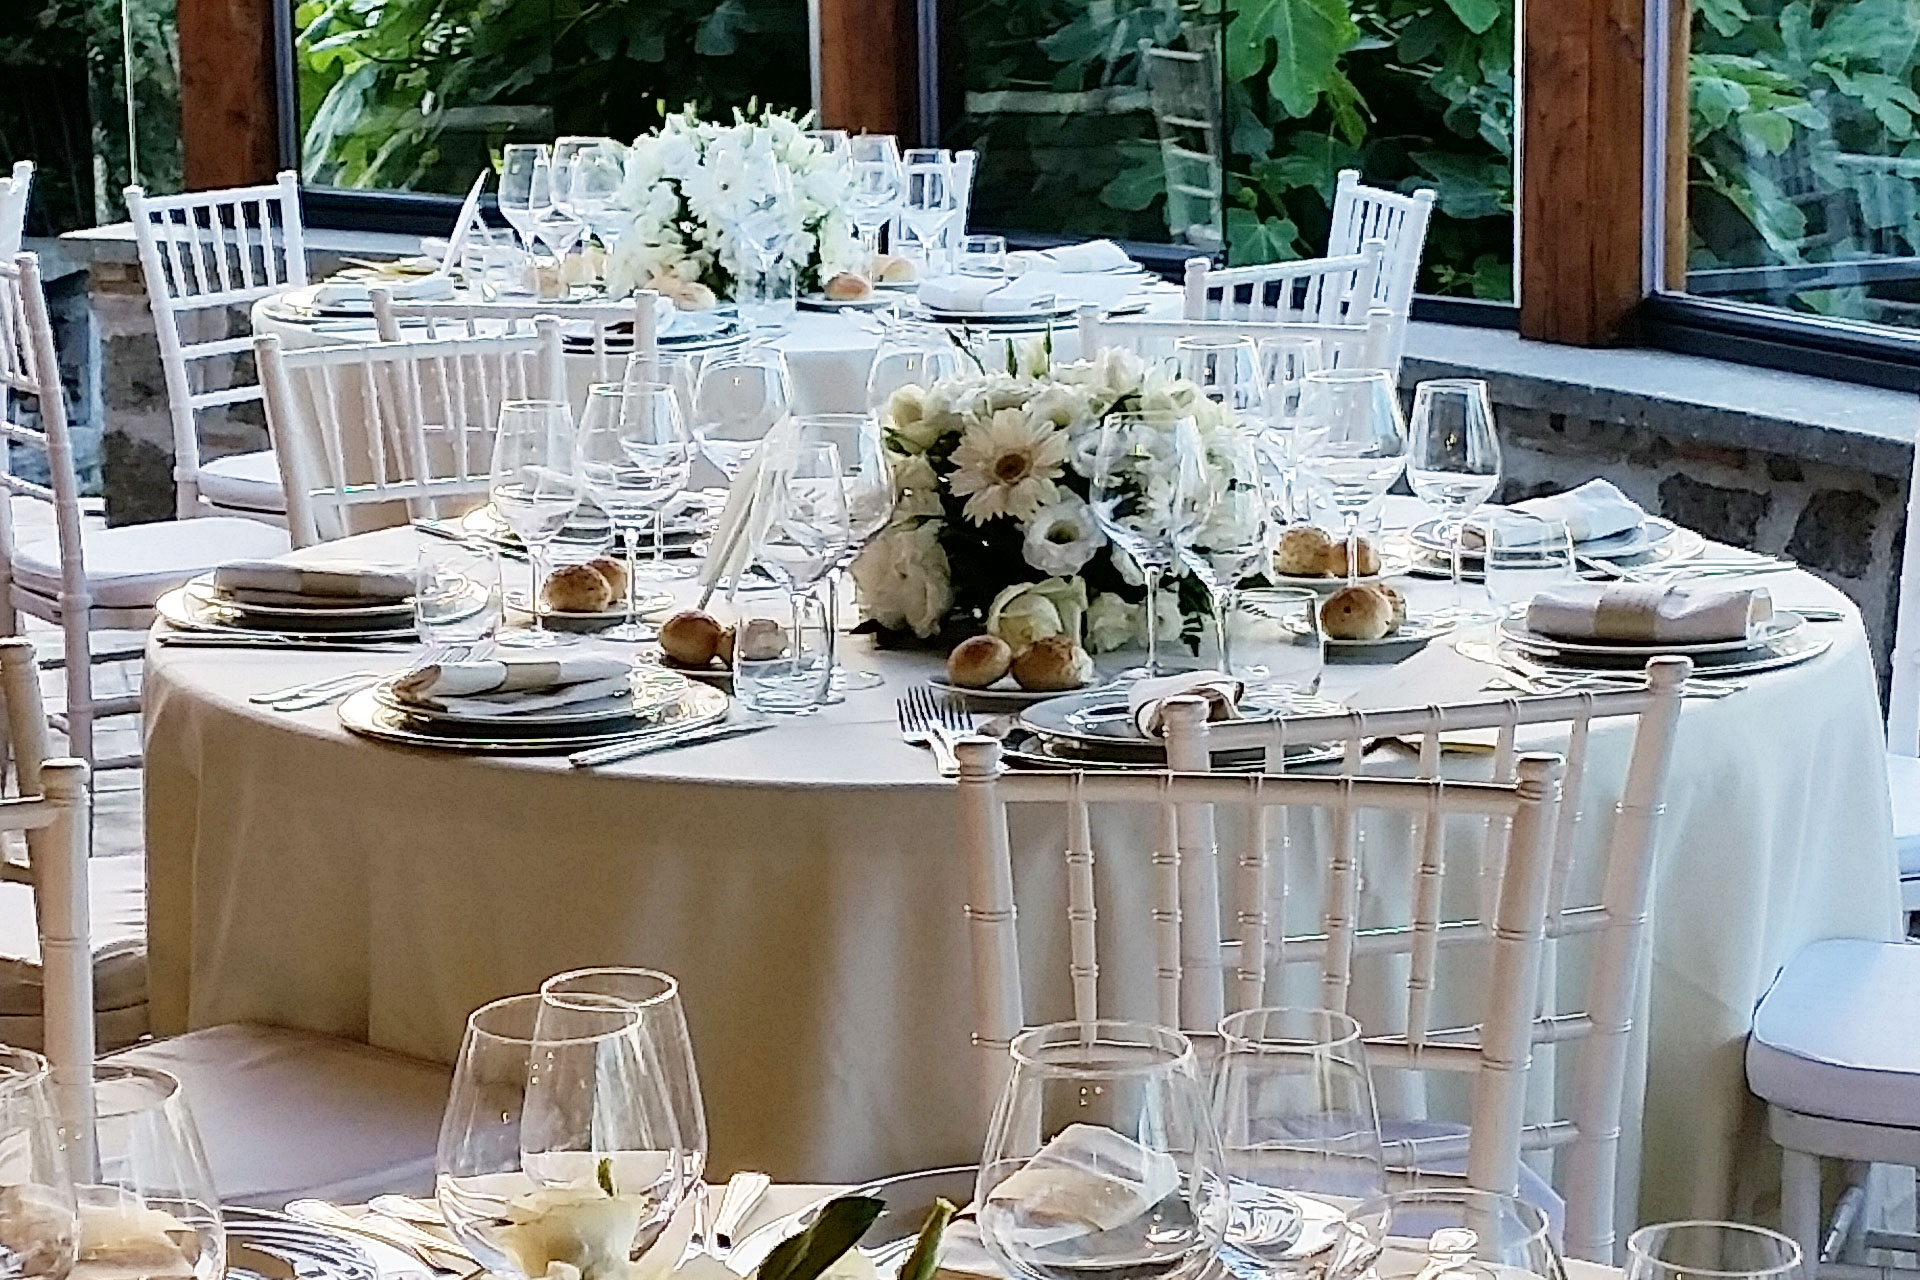 Matrimonio Country Chic Toscana : Matrimonio country chic wn regardsdefemmes